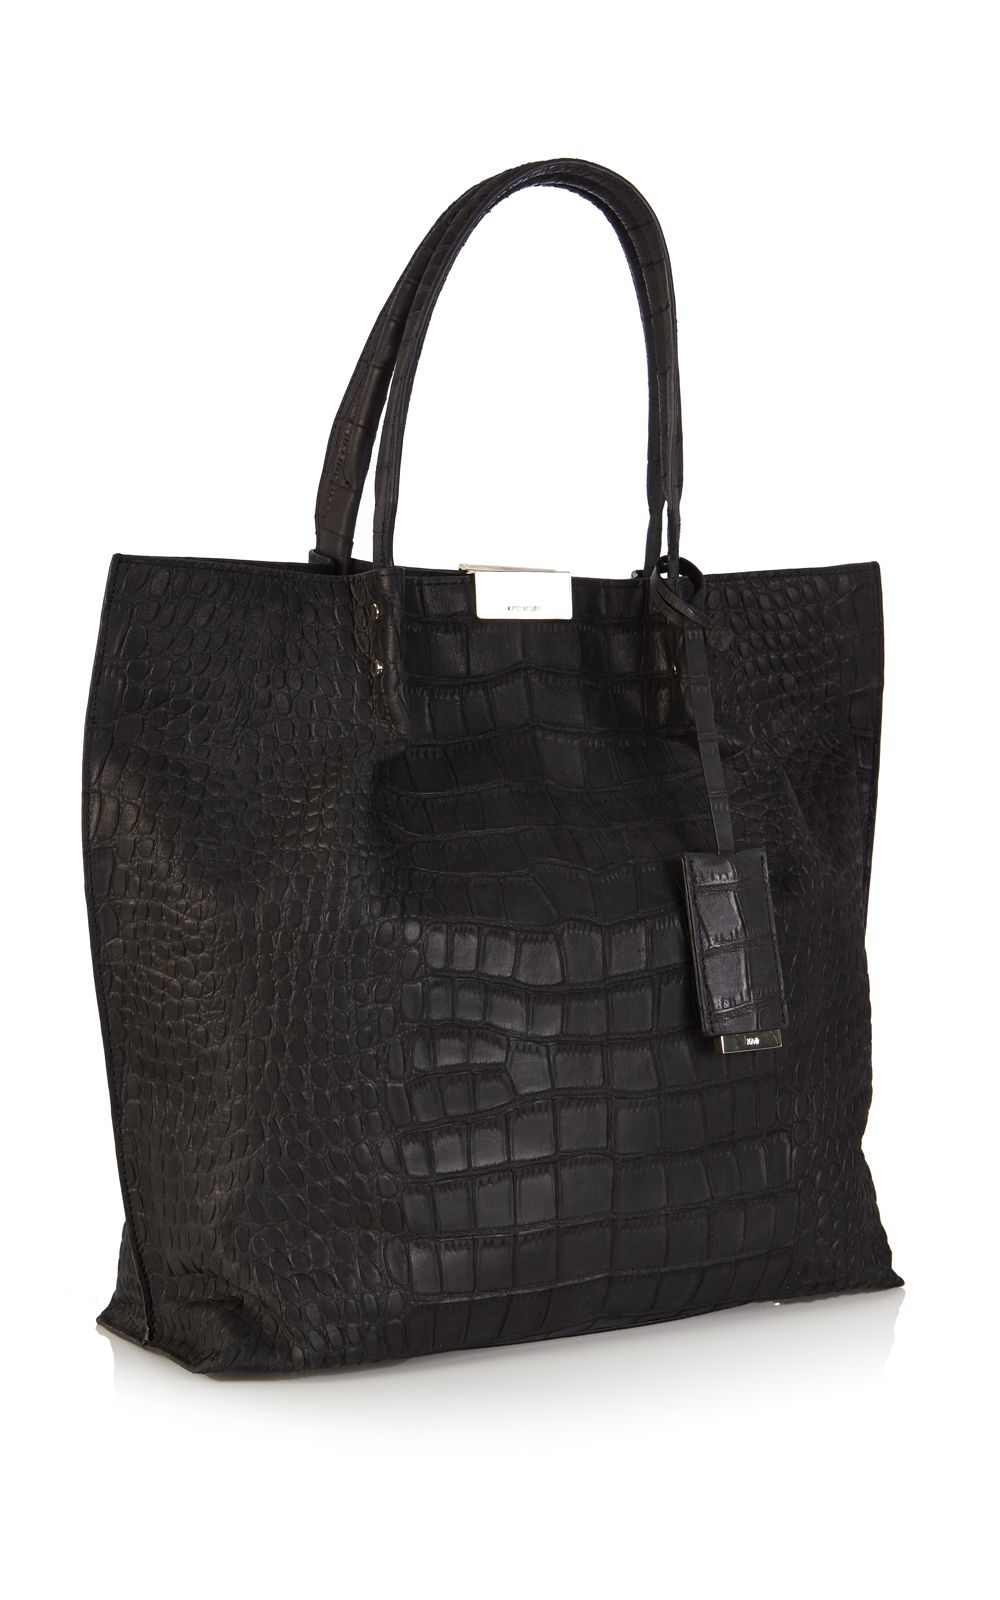 Limited Edition croc effect tote